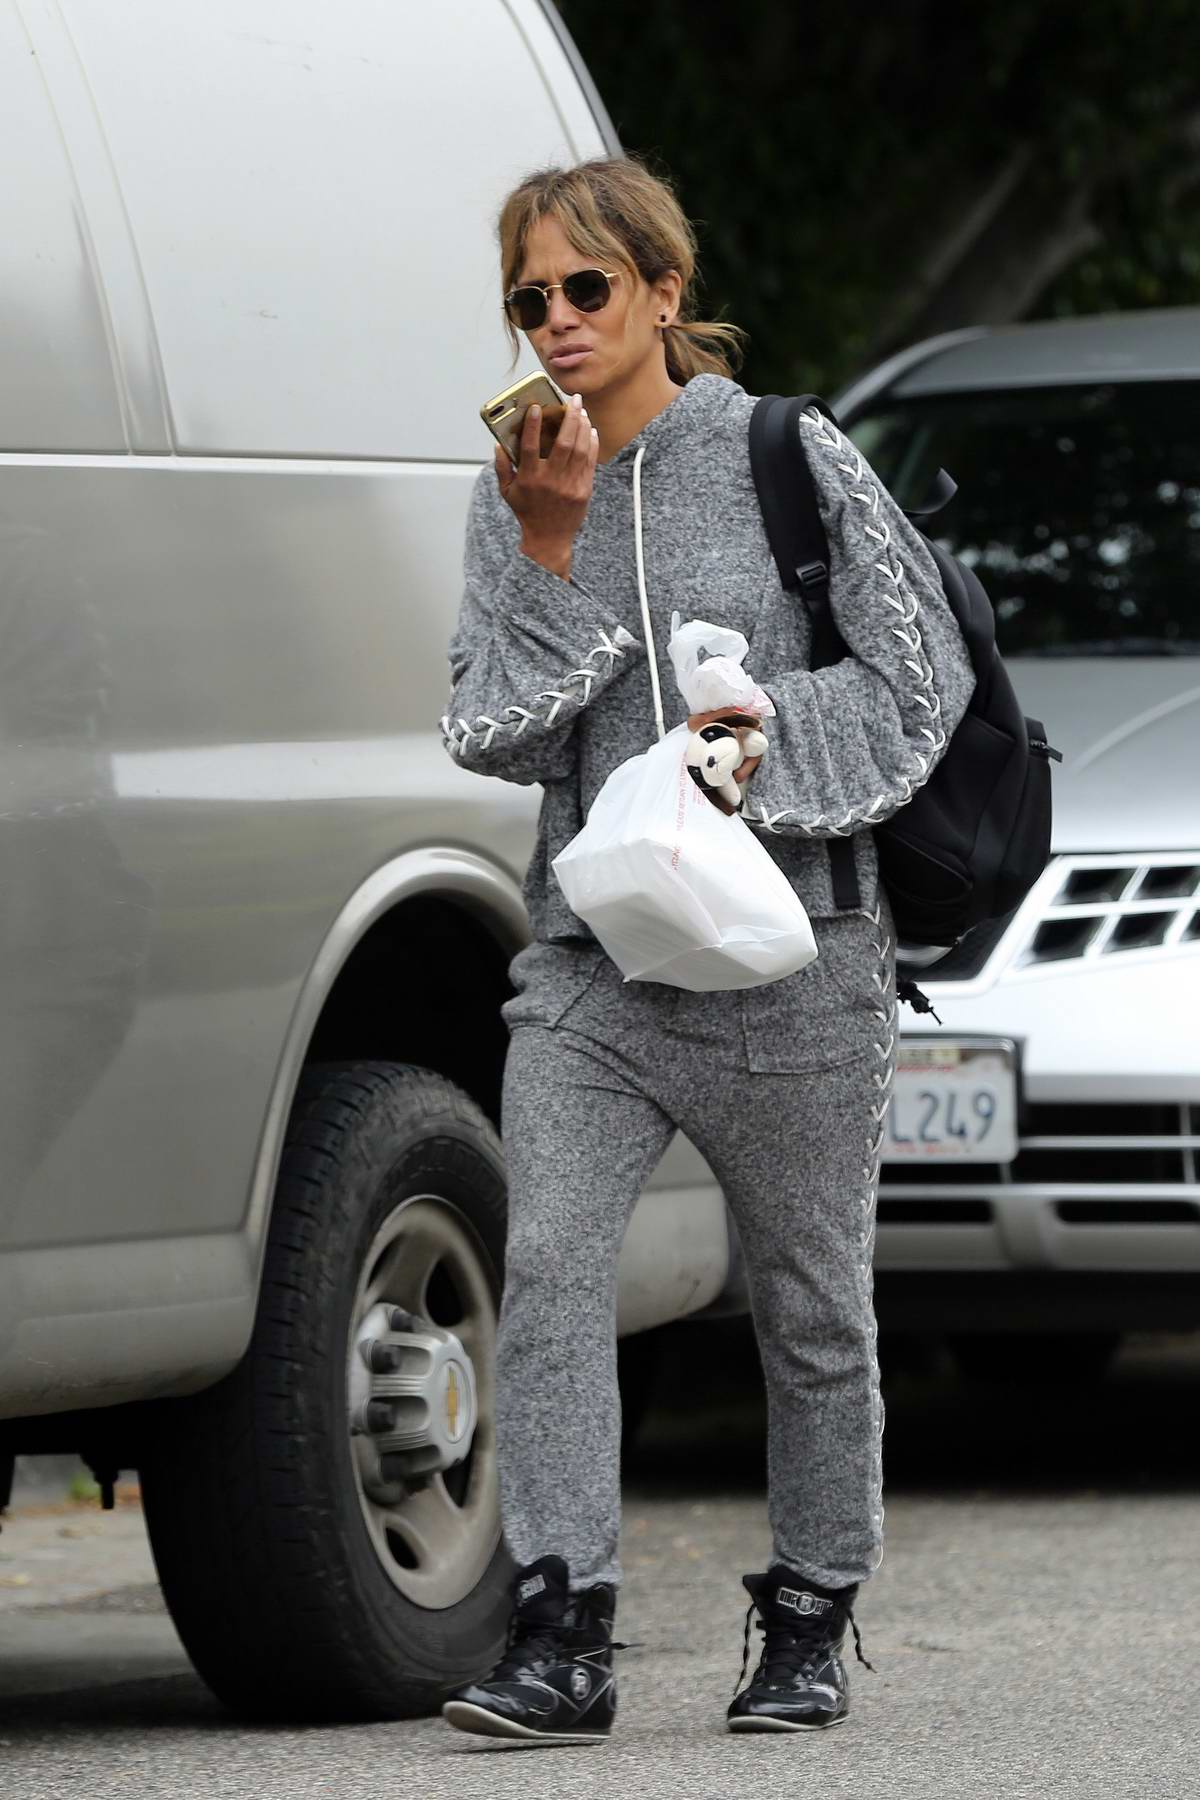 Halle Berry chats on her phone as she leaves the gym in Los Angeles